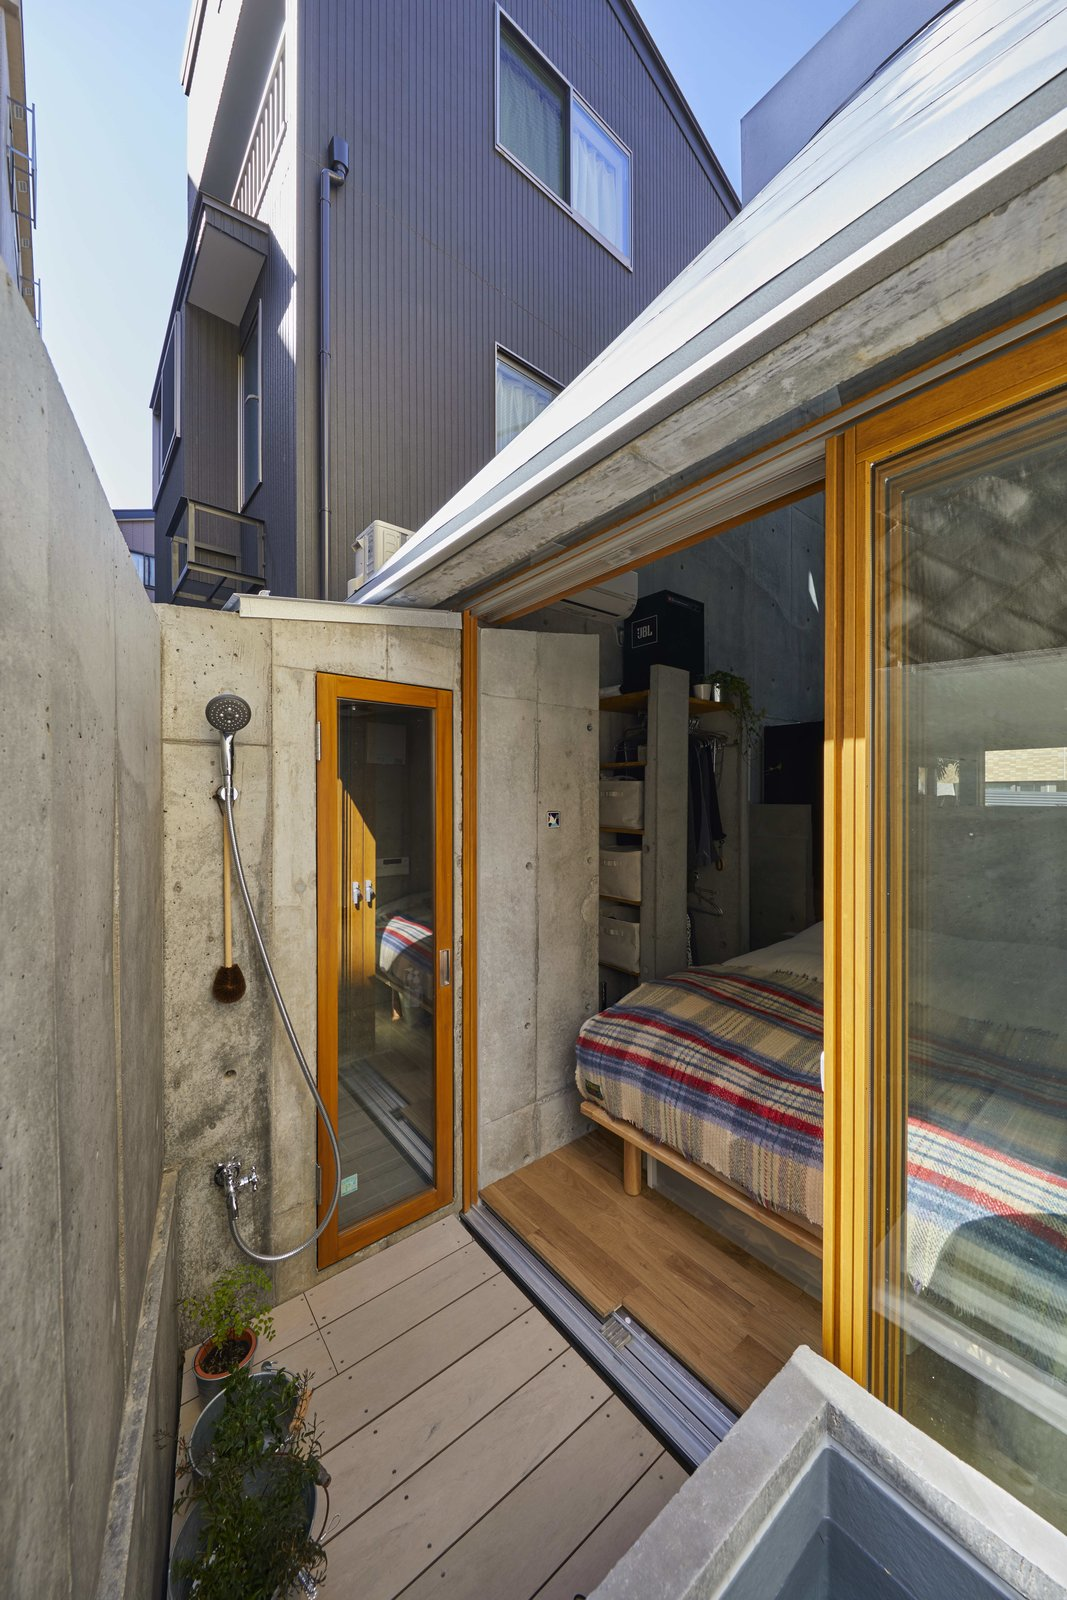 Outdoor, Raised Planters, Back Yard, Hardscapes, Small, and Shower The bedroom opens out onto a small rear deck with potted plants and an outdoor shower.  Outdoor Shower Photos from A Concrete Tiny House in Tokyo Opens to the Sky—and the Street